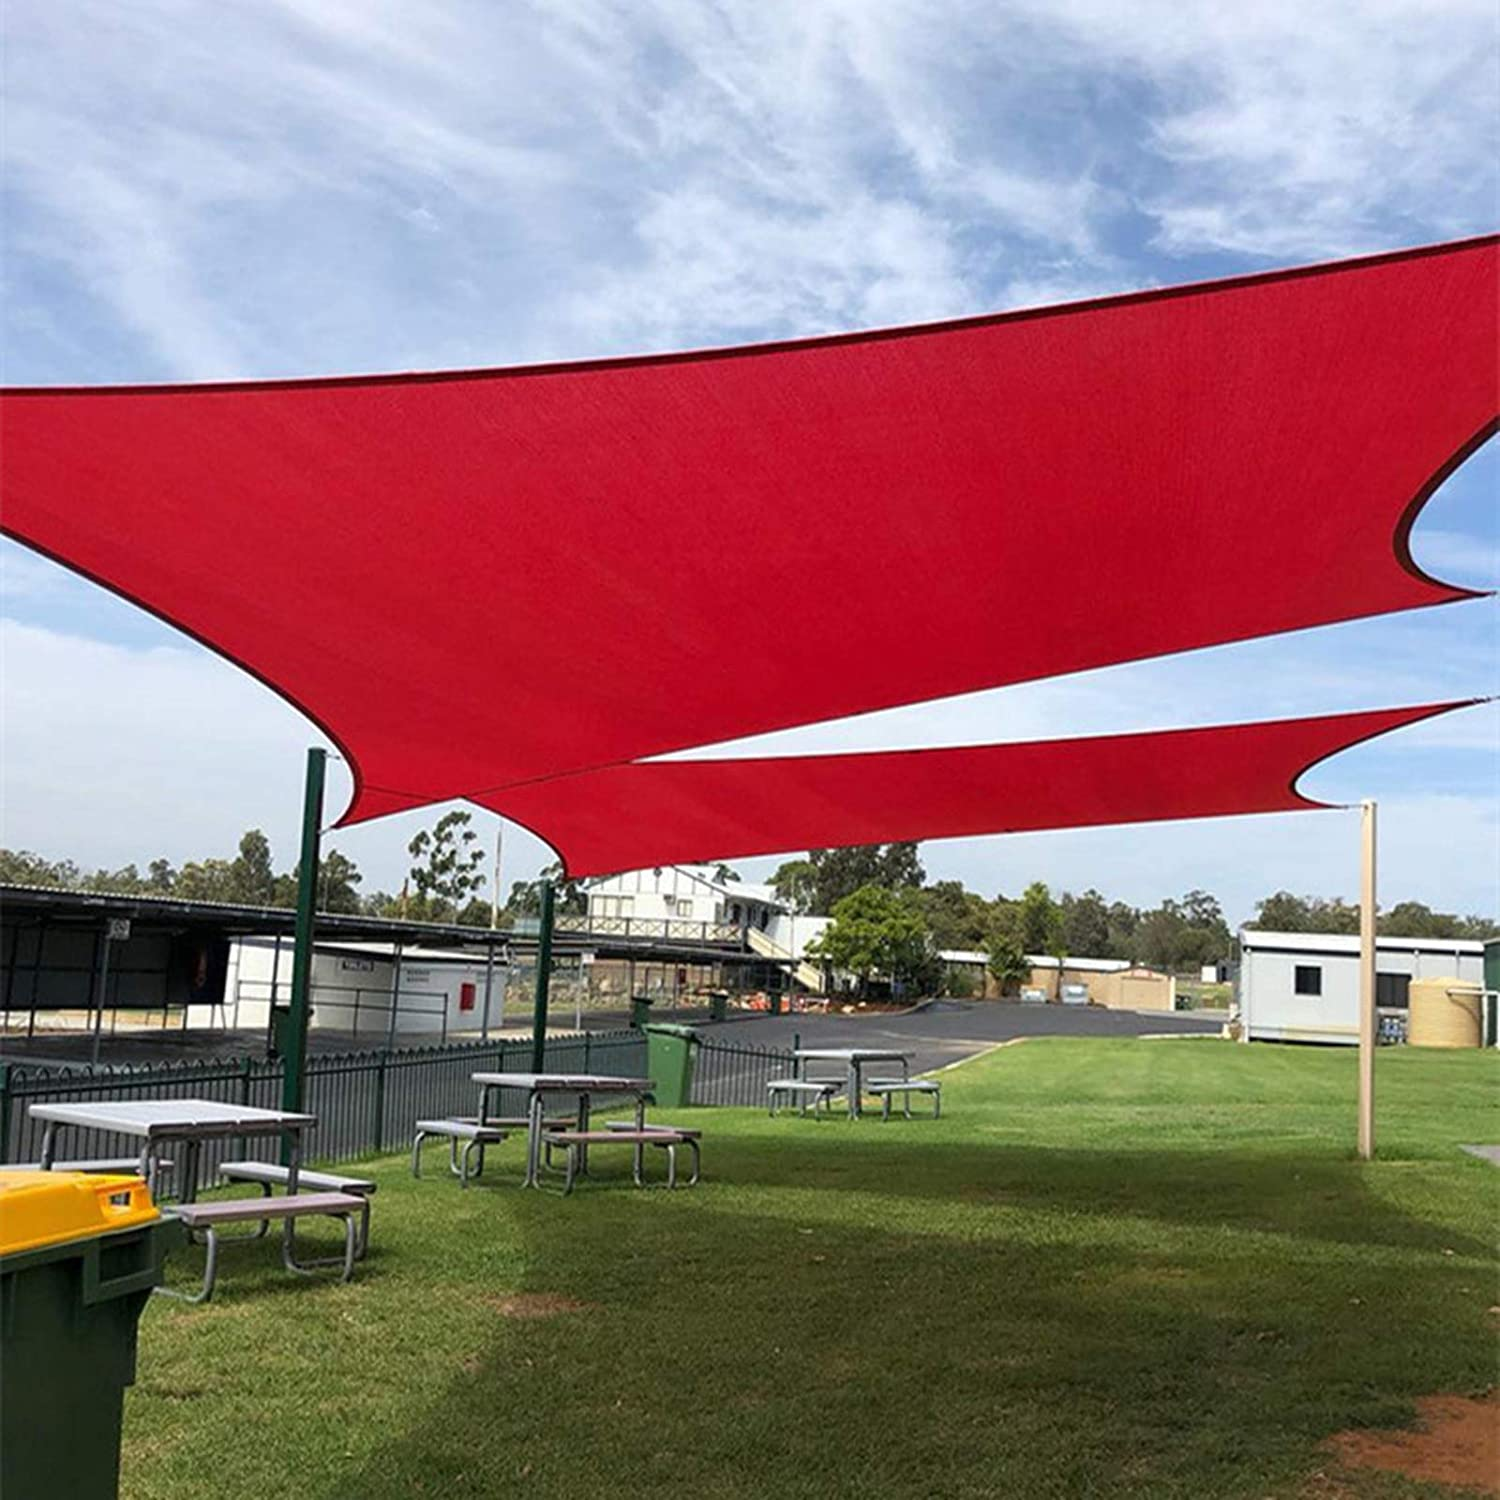 BELLE DURA 10'X13' Rectangle Rust Red Attention brand Use Max 60% OFF Sail Canopy Sun Shade